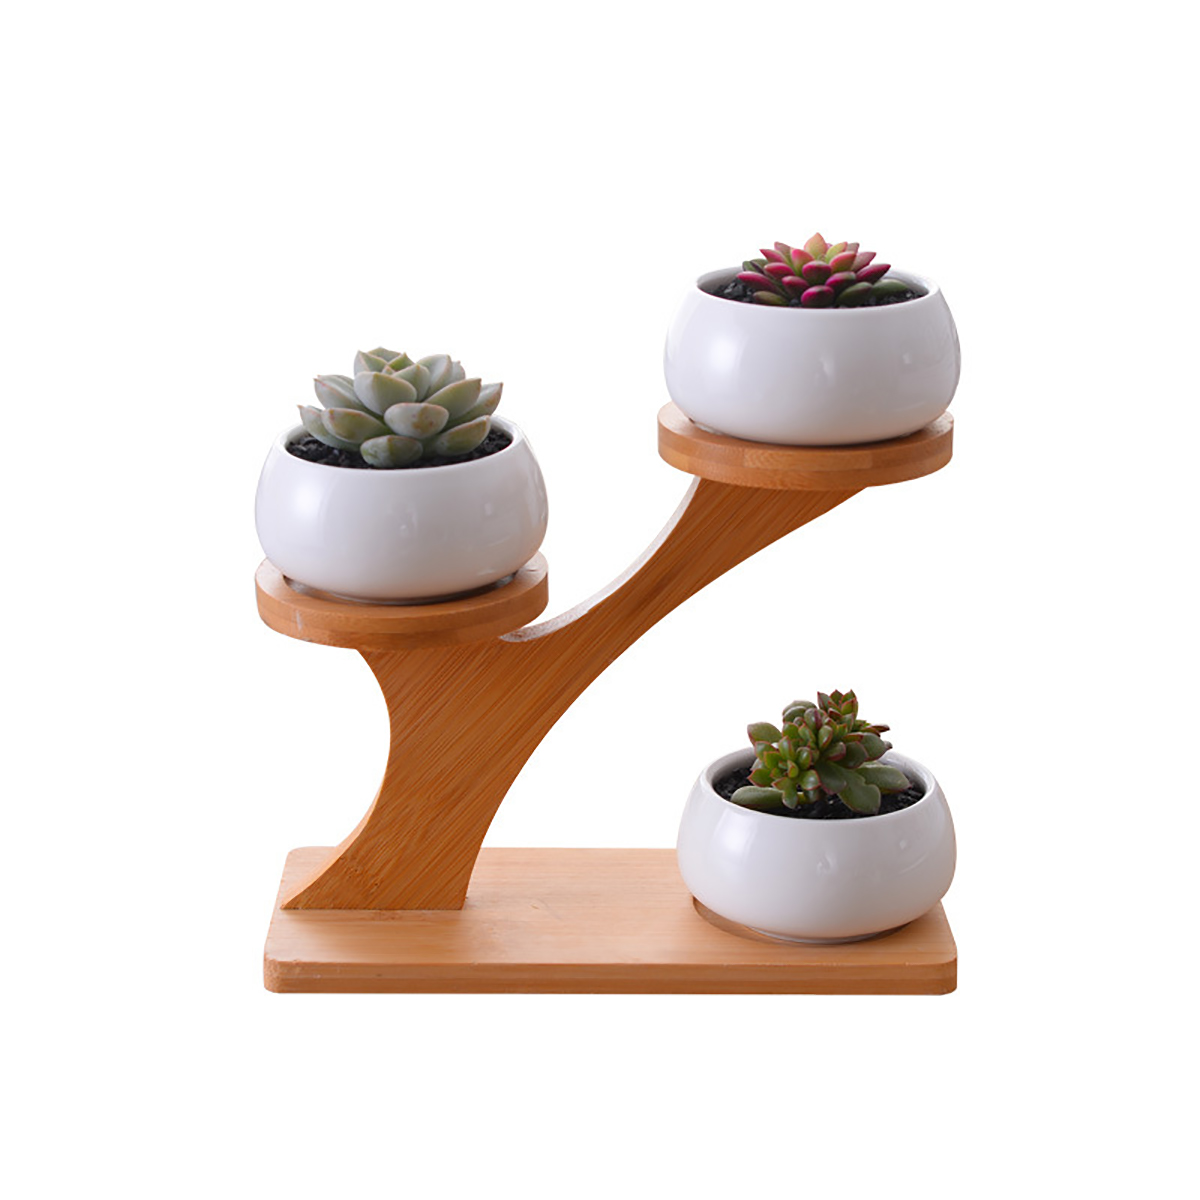 1 Set Ceramic Decorative Garden Flower Pots Modern White Simple Succulent Plant Holder With 3-level Bamboo Shelf